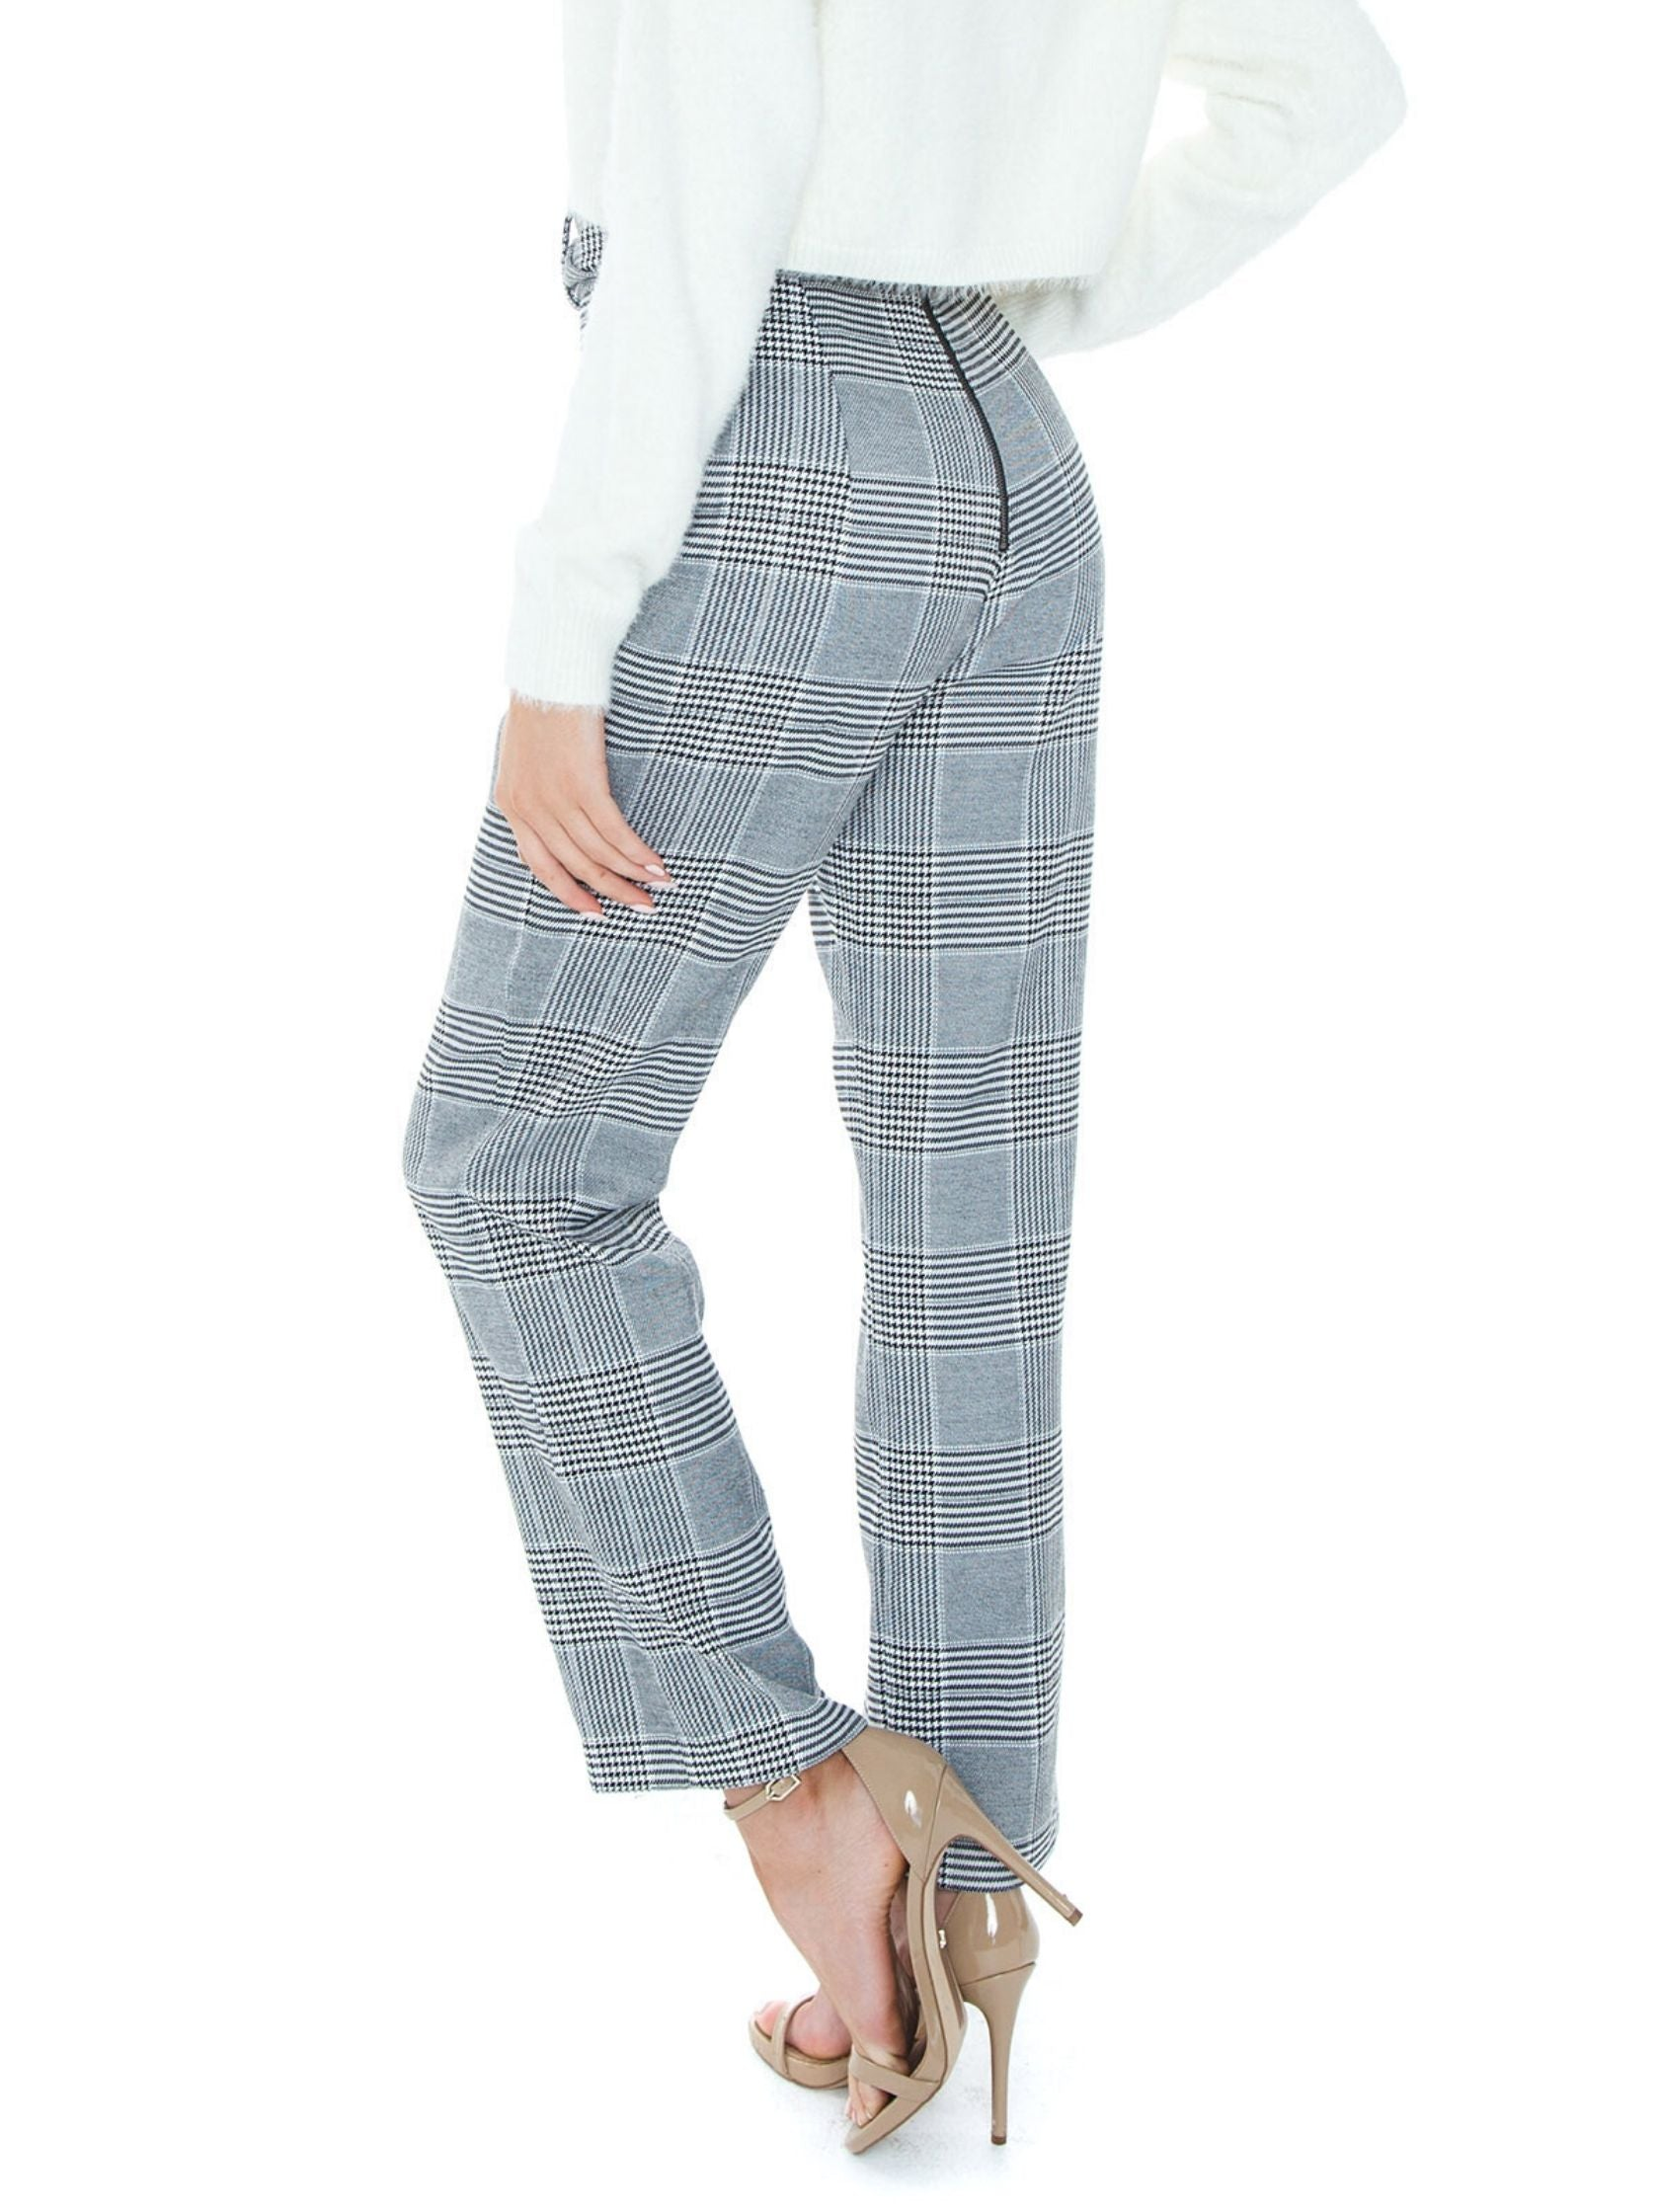 Women outfit in a pants rental from BARDOT called Belted Check Pant